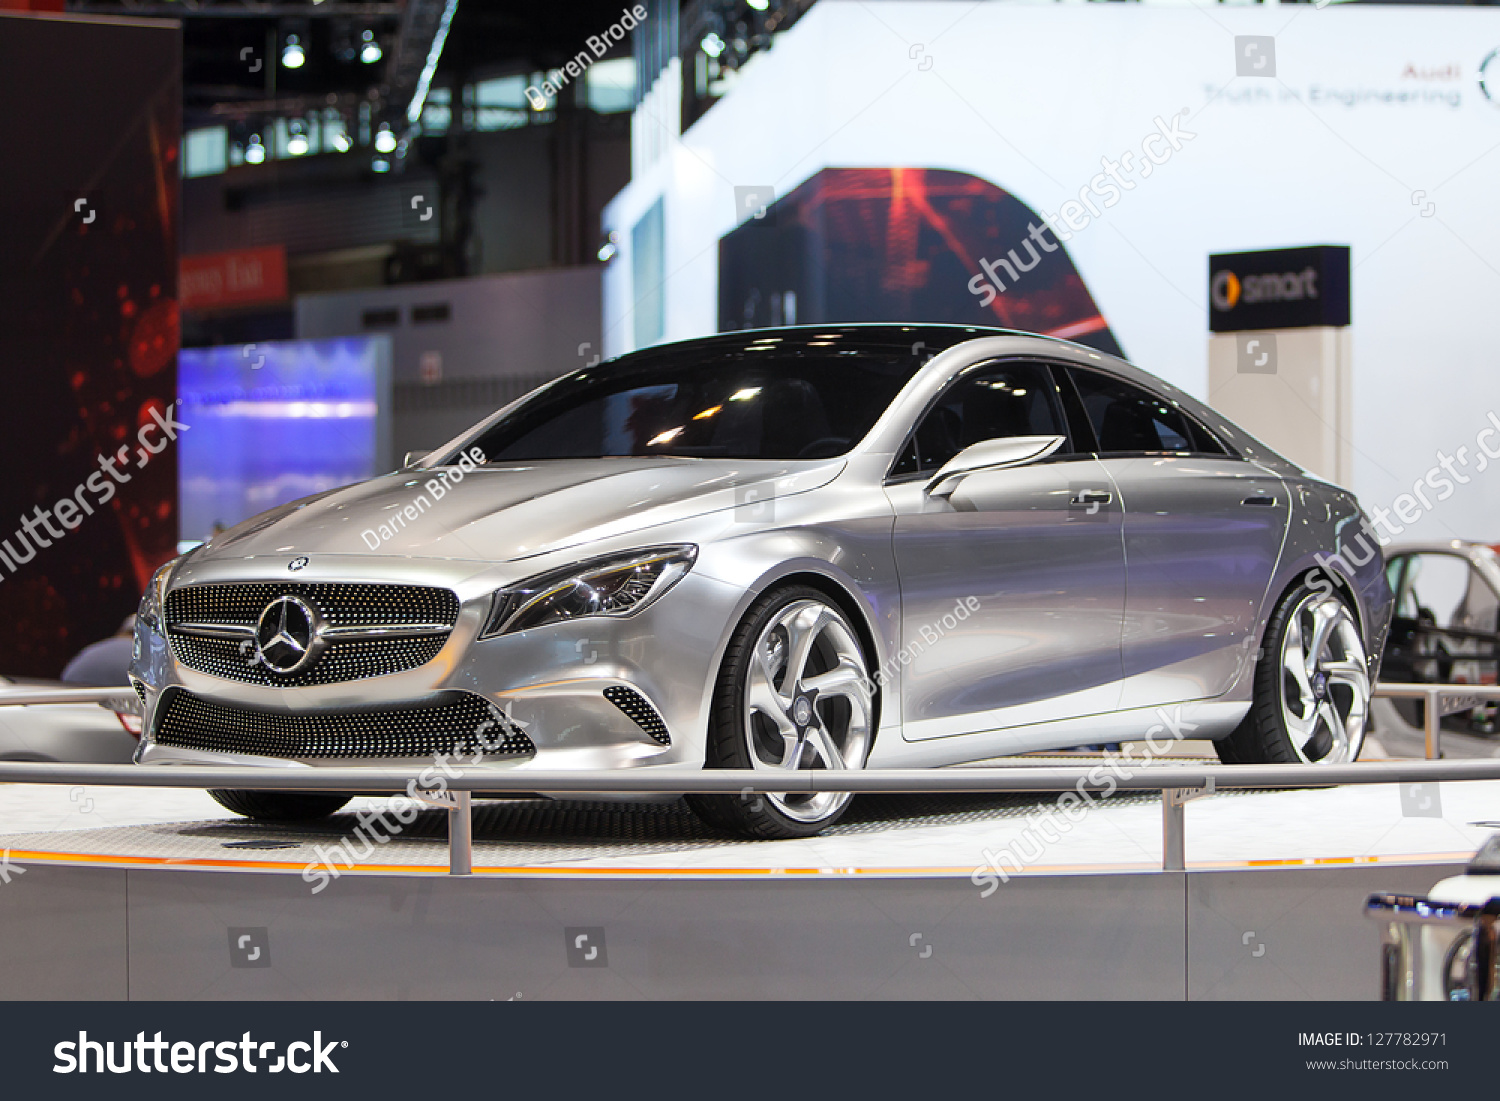 Mercedes concept car chicago auto show - Mercedes car show ...